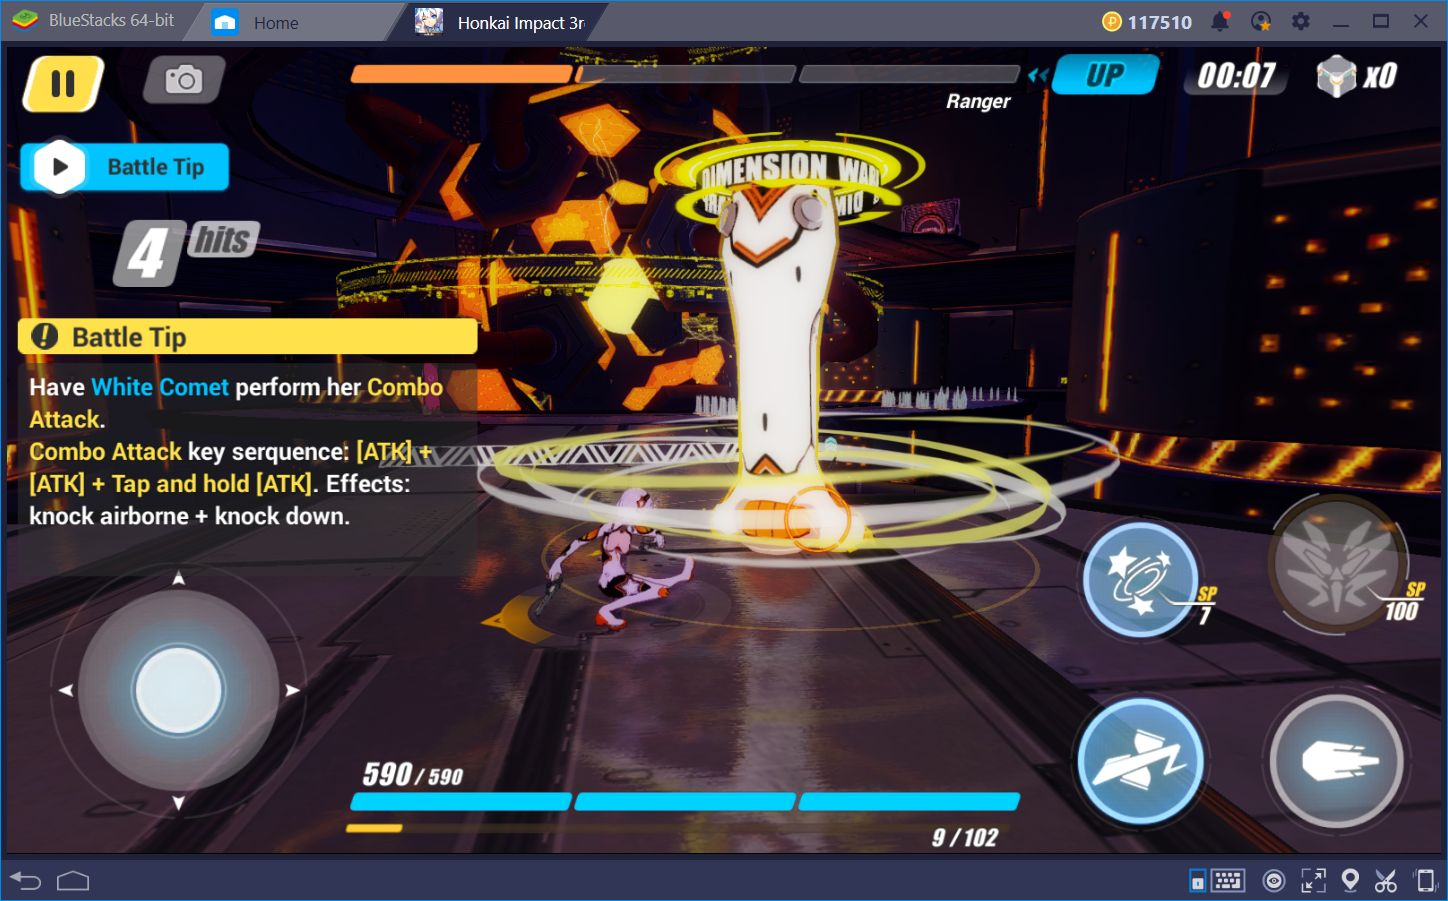 Honkai Impact 3rd on BlueStacks—Optimize Your Performance with our Tools